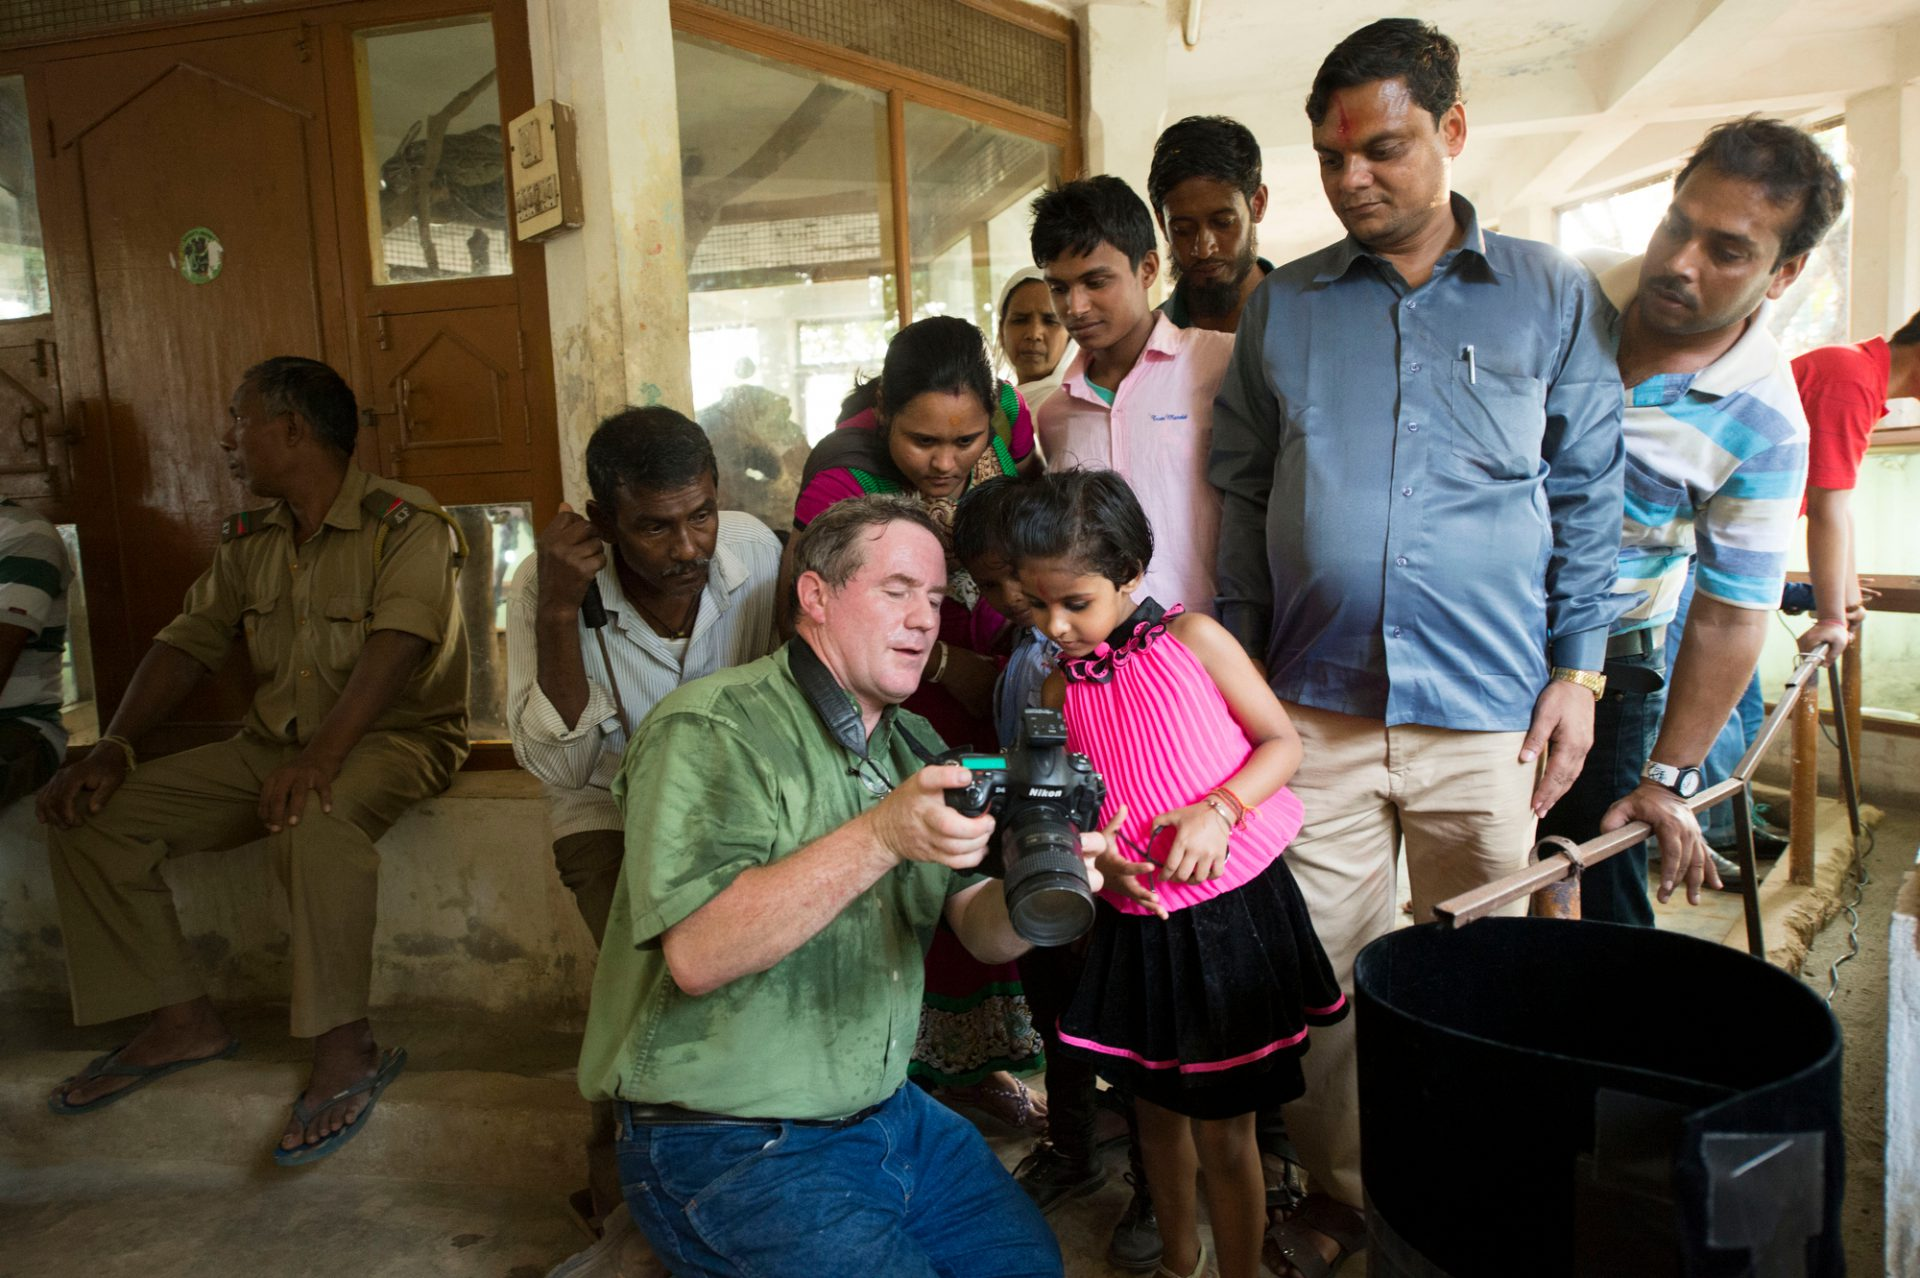 Photo: Joel shows an image to a group during a Photo Ark shoot inside the reptile house at the Assam State Zoo in Guwahati, Assam, India.